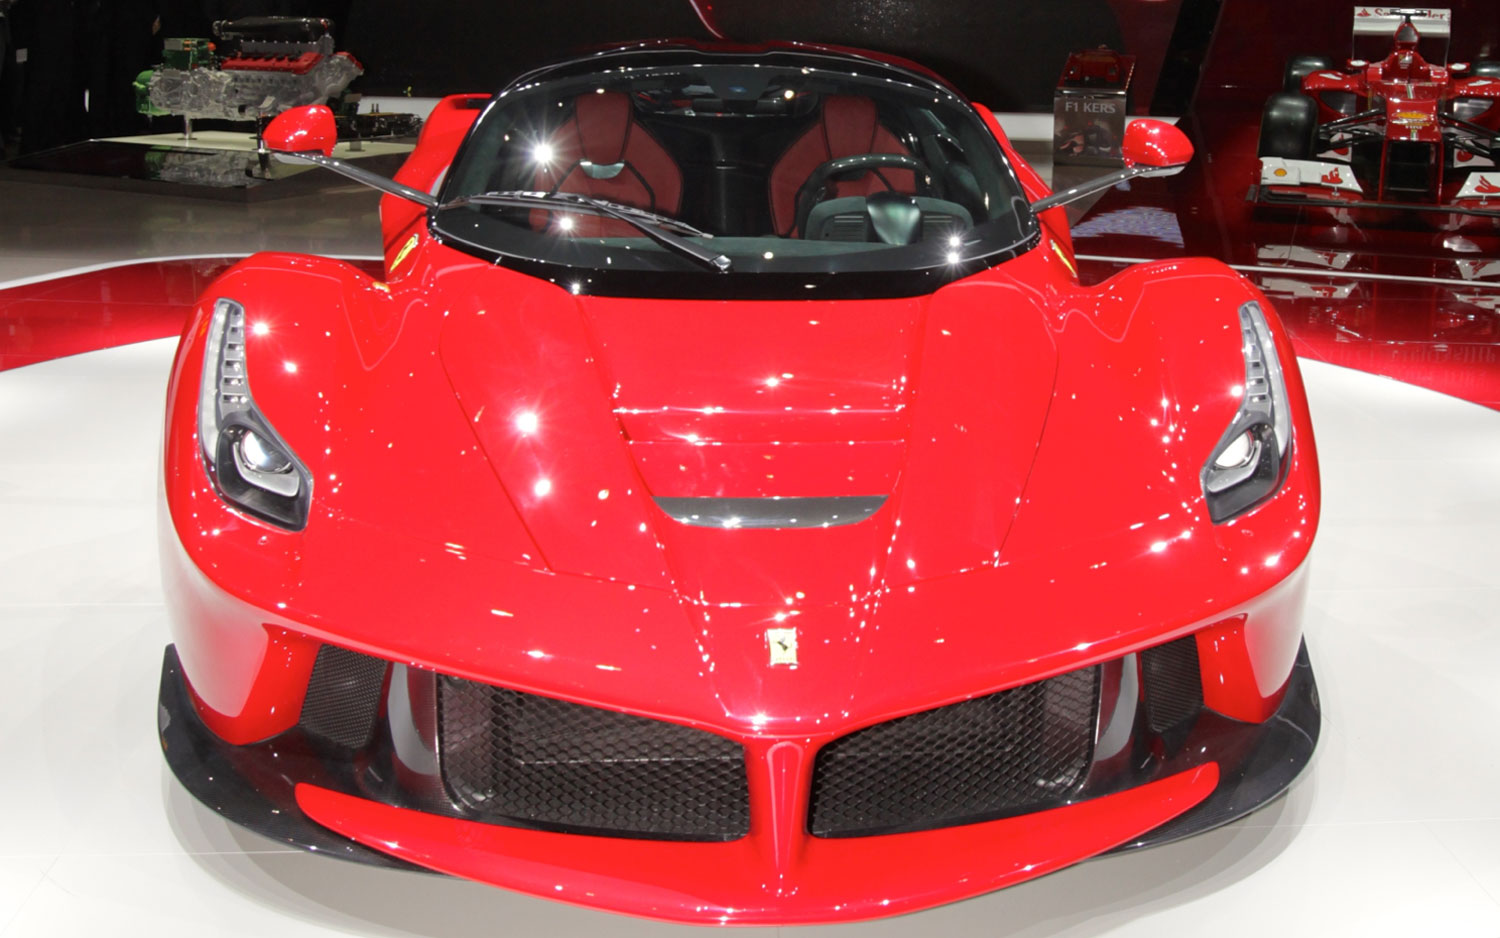 Ferrari laferrari first look new cars reviews for 1 20 hp electric motor